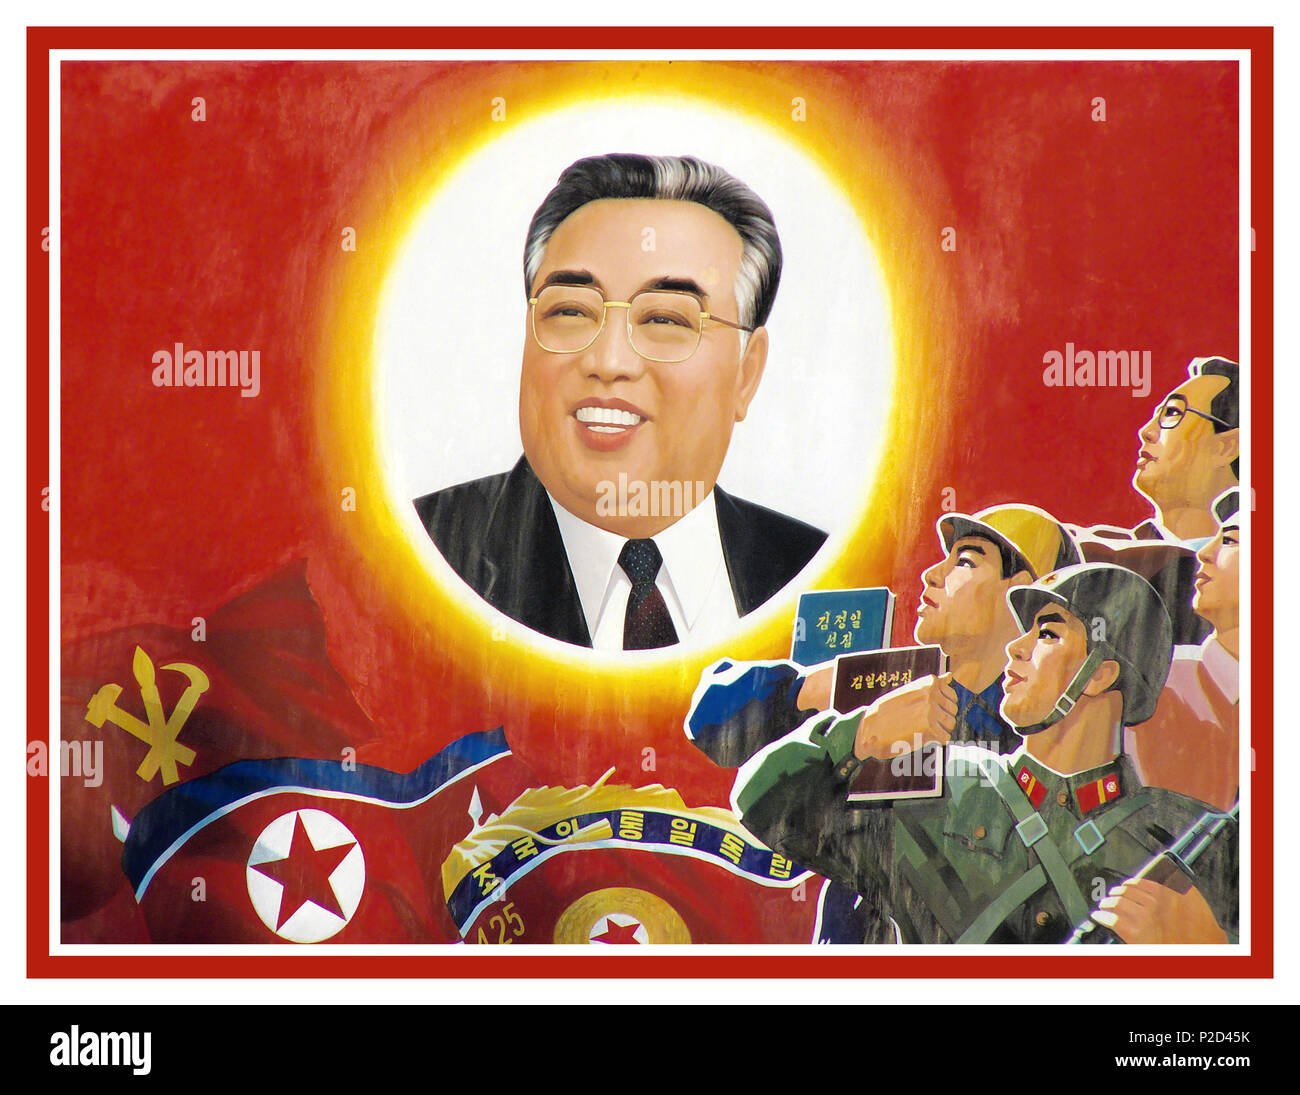 """Vintage Propaganda Poster 1960's Kim Il-sung North Korea, officially the Democratic People's Republic of Korea In the """"Democratic People's Republic of Korea"""" (DPRK), Kim Il-sung built a cult of personality, a communist totalitarian dictatorship established under an ideology known as """"Juche"""" - Stock Image"""